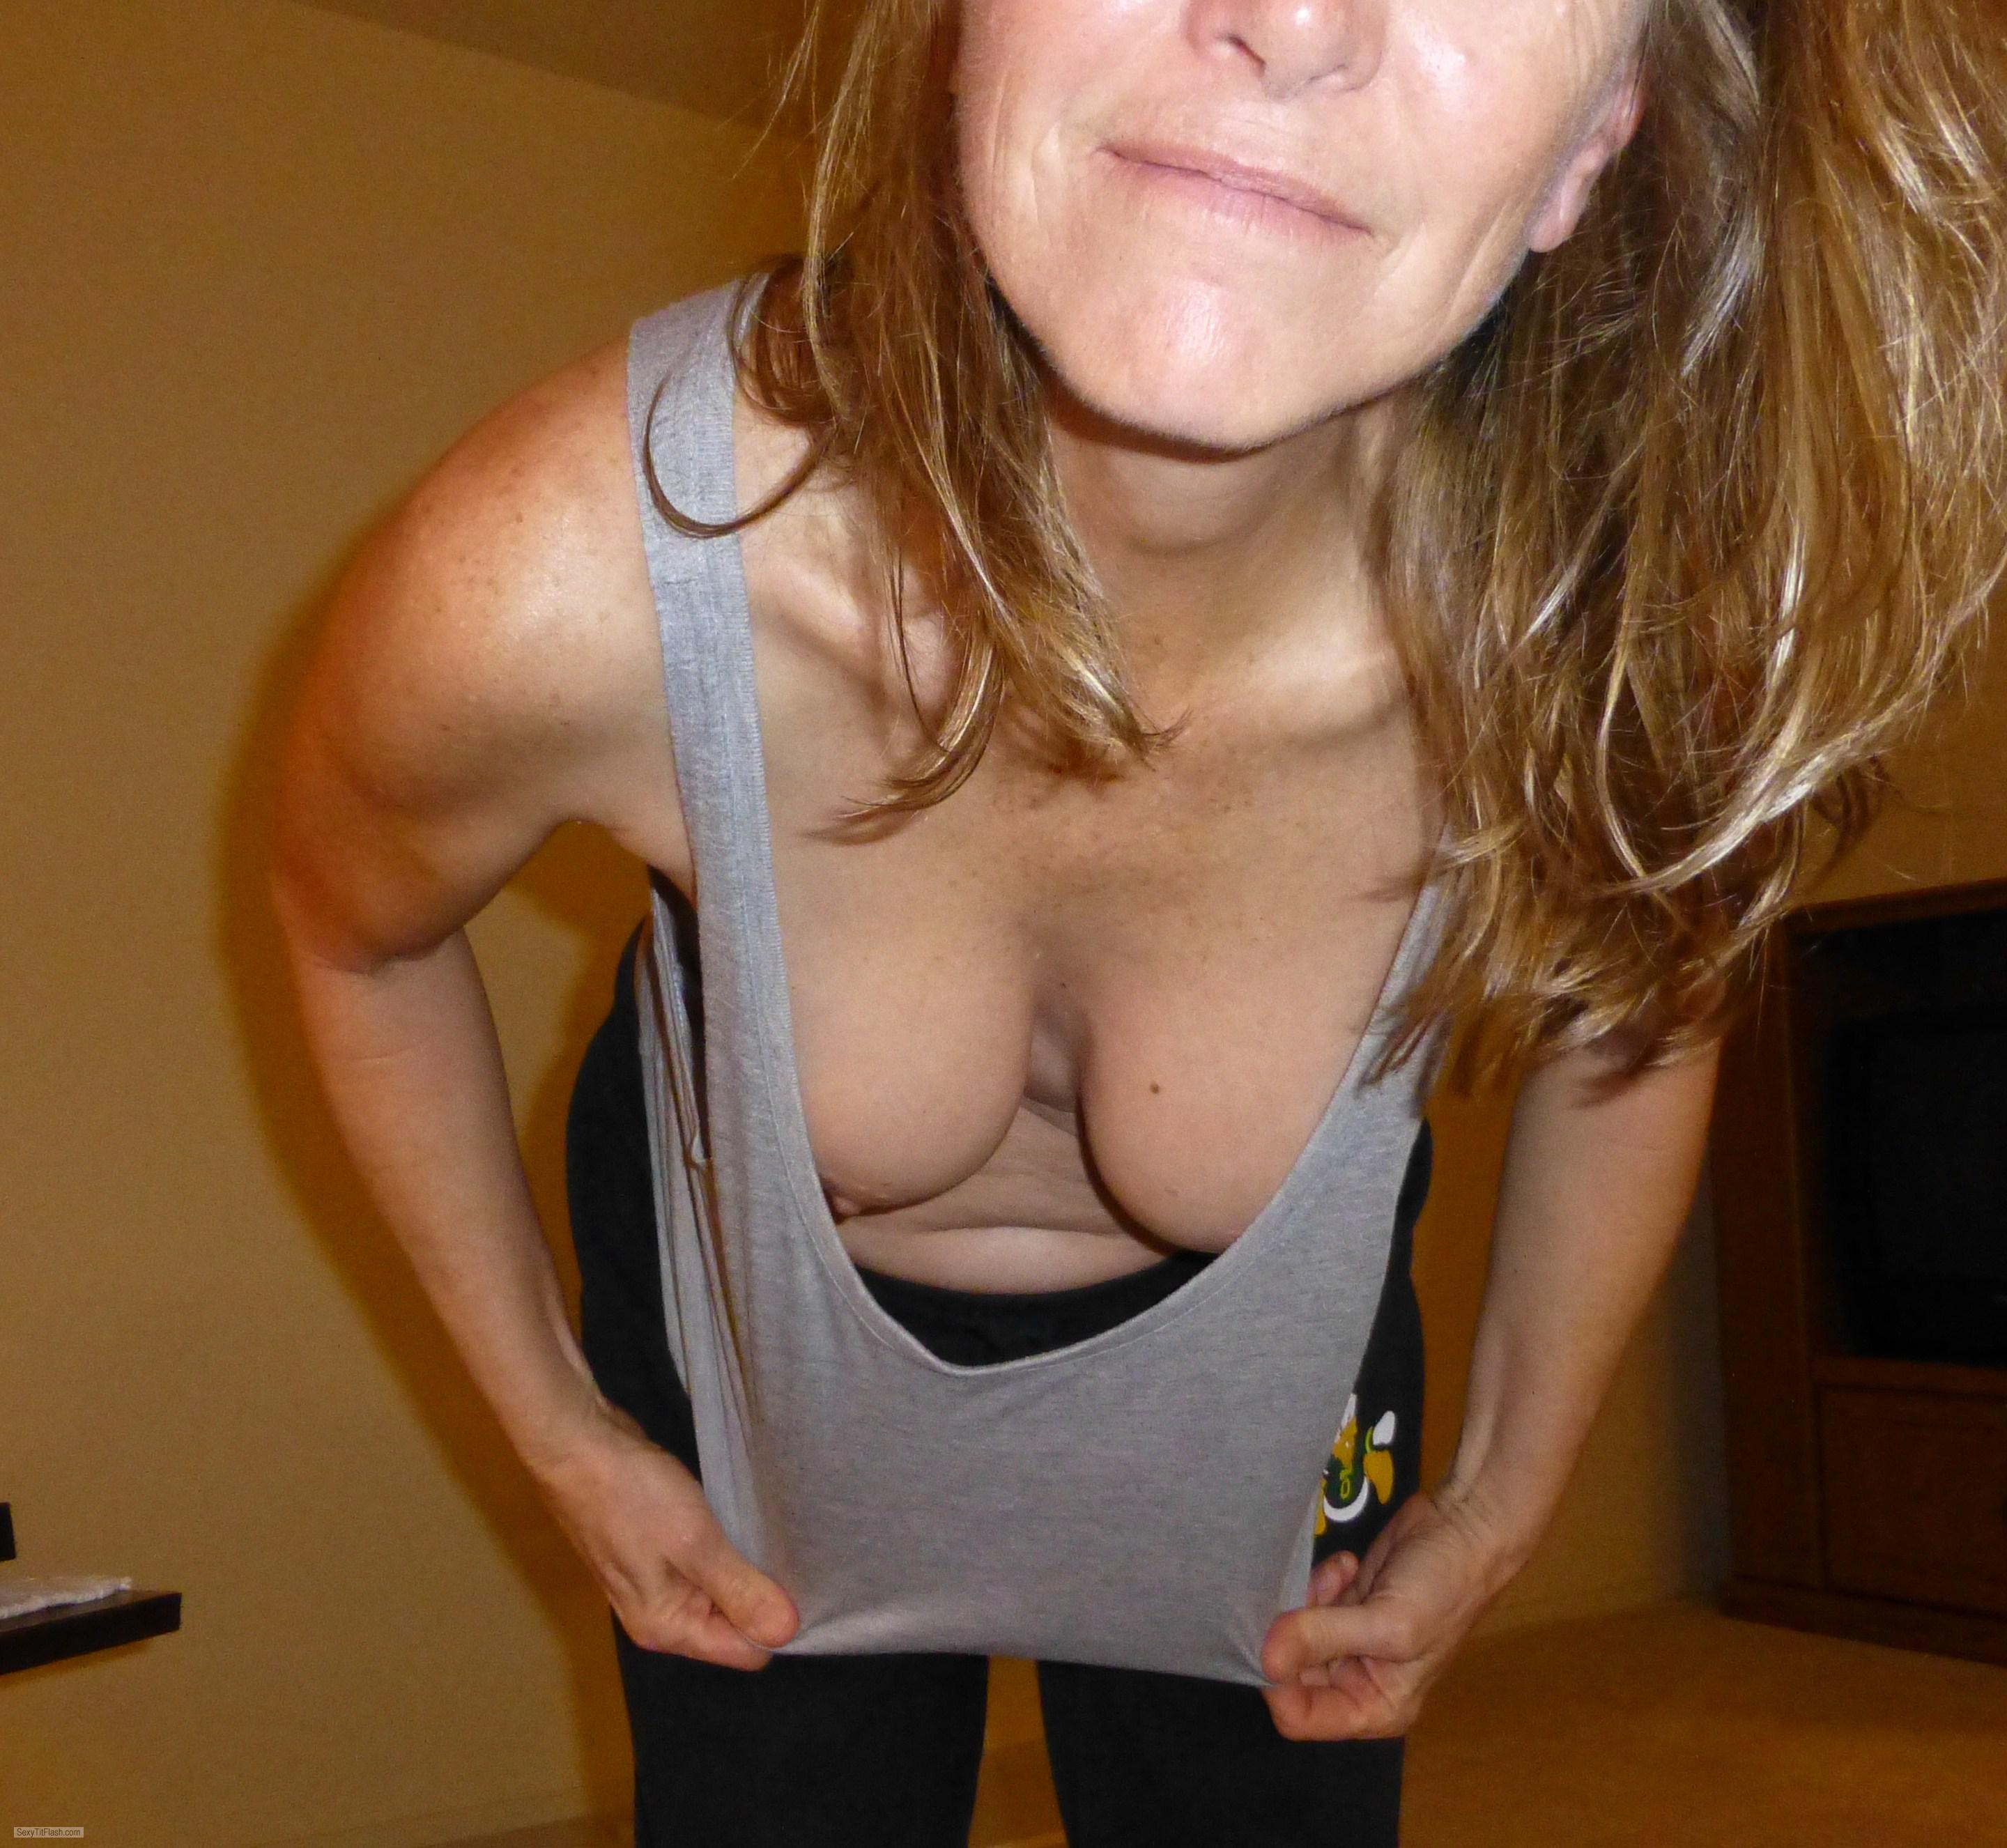 Tit Flash: Wife's Small Tits - Amy from United States